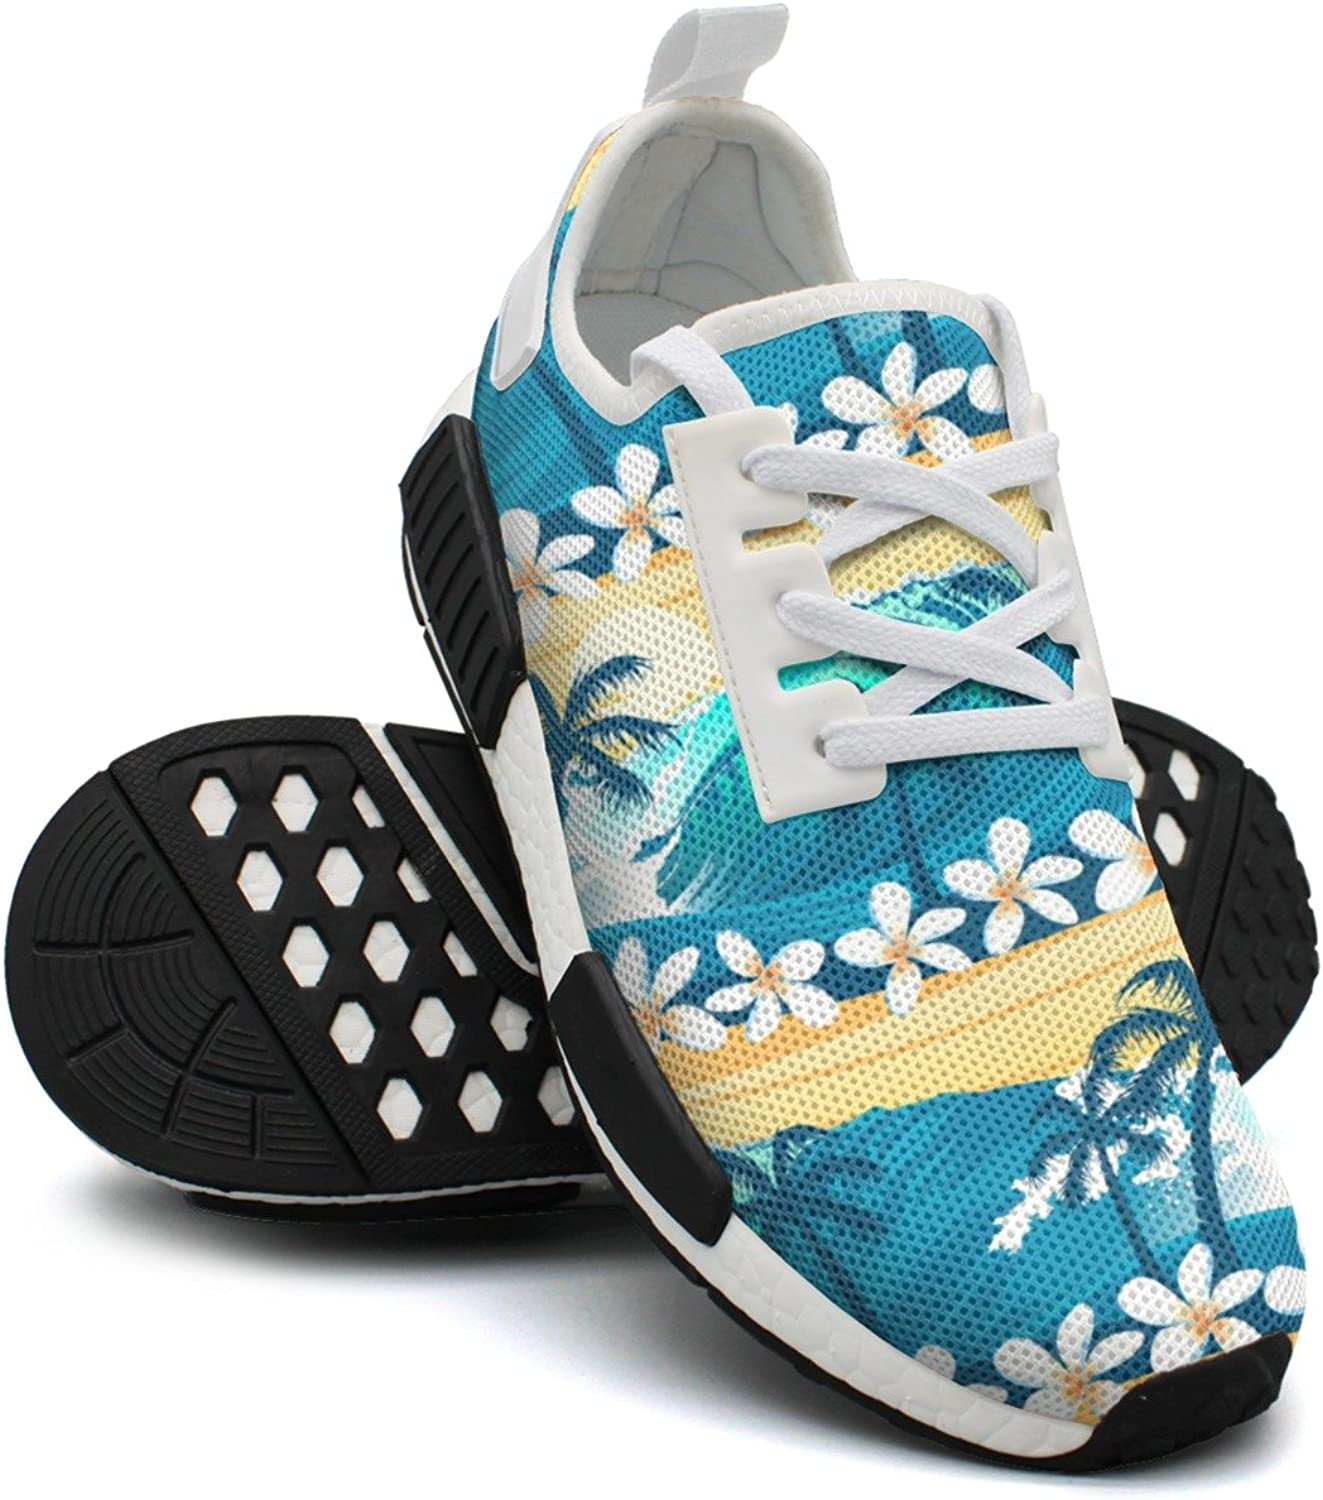 Tropical Surfing With Palm Trees Jogging shoes For Women Nmd Gym Training shoes